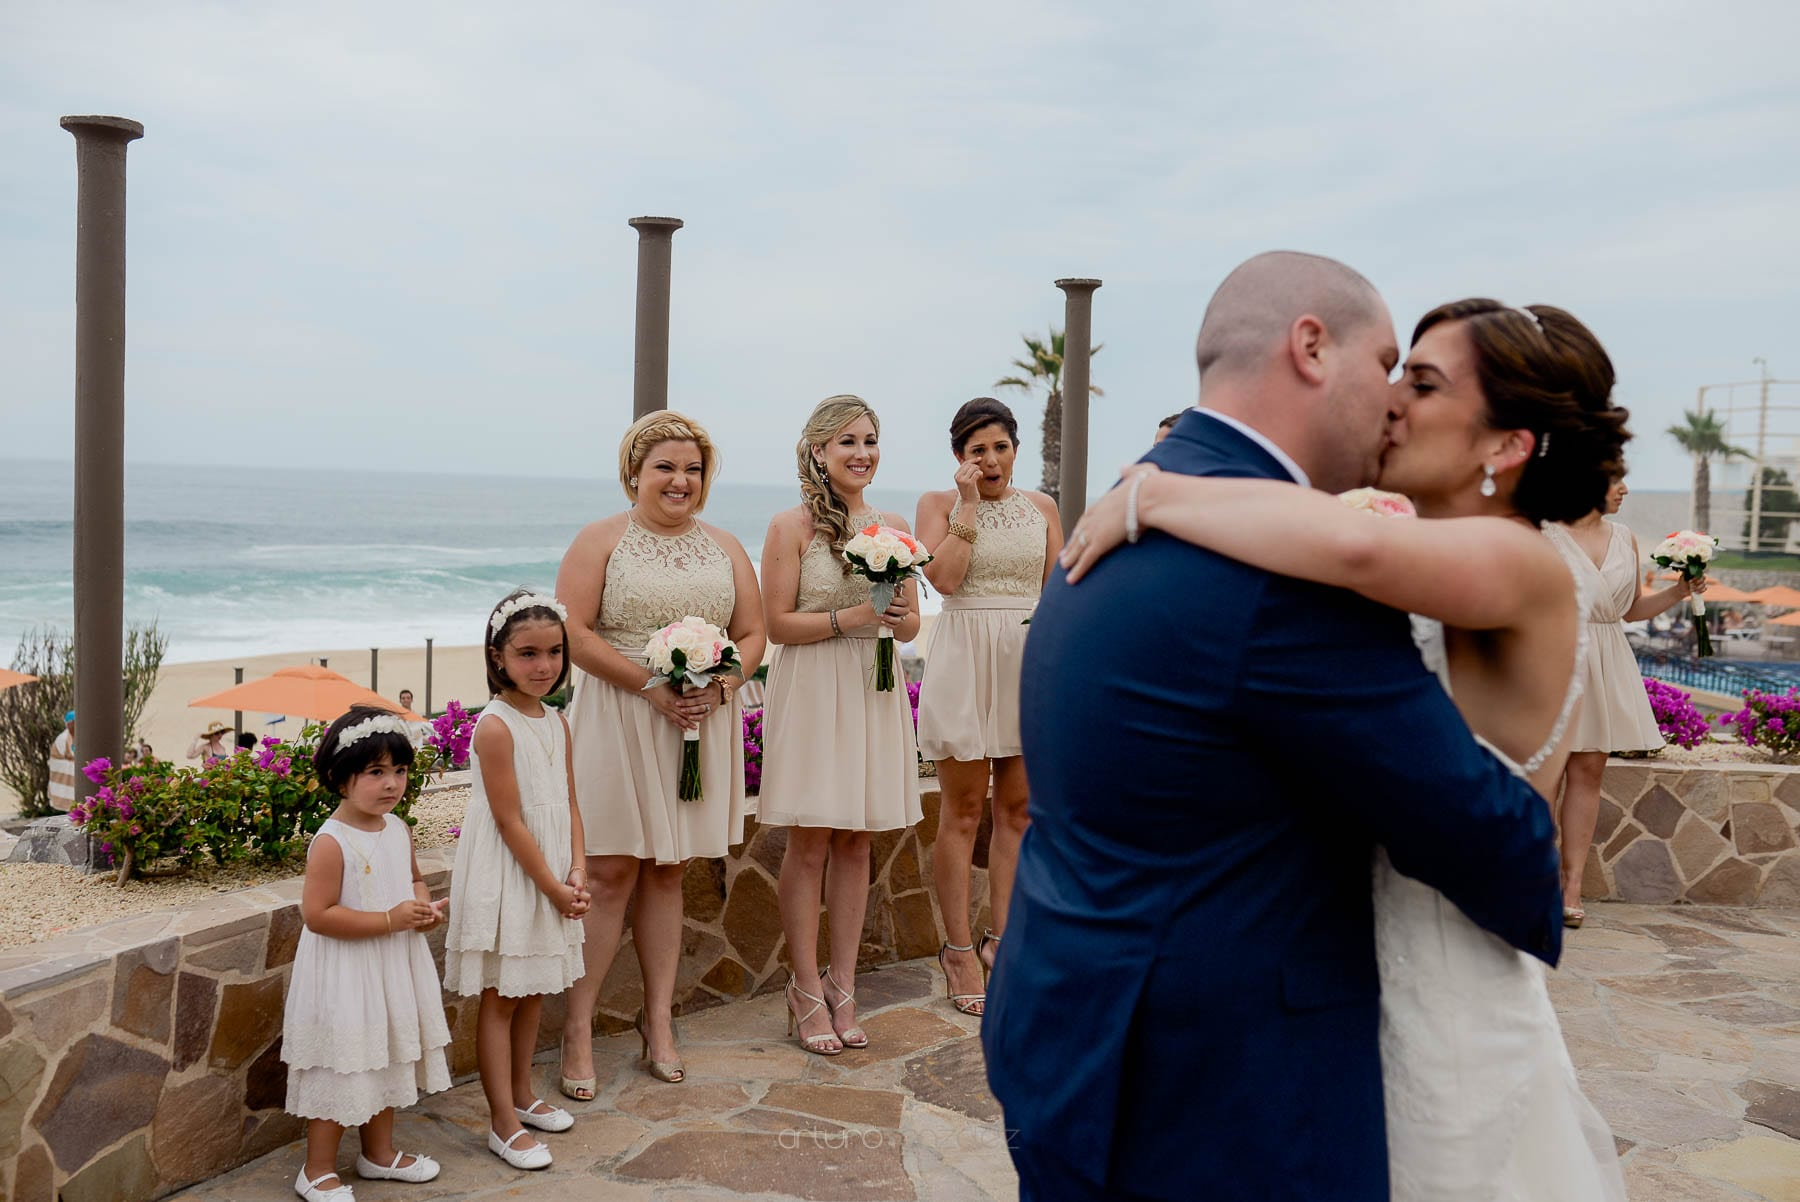 wedding-photos-pueblo-bonito-sunset-beach-4577